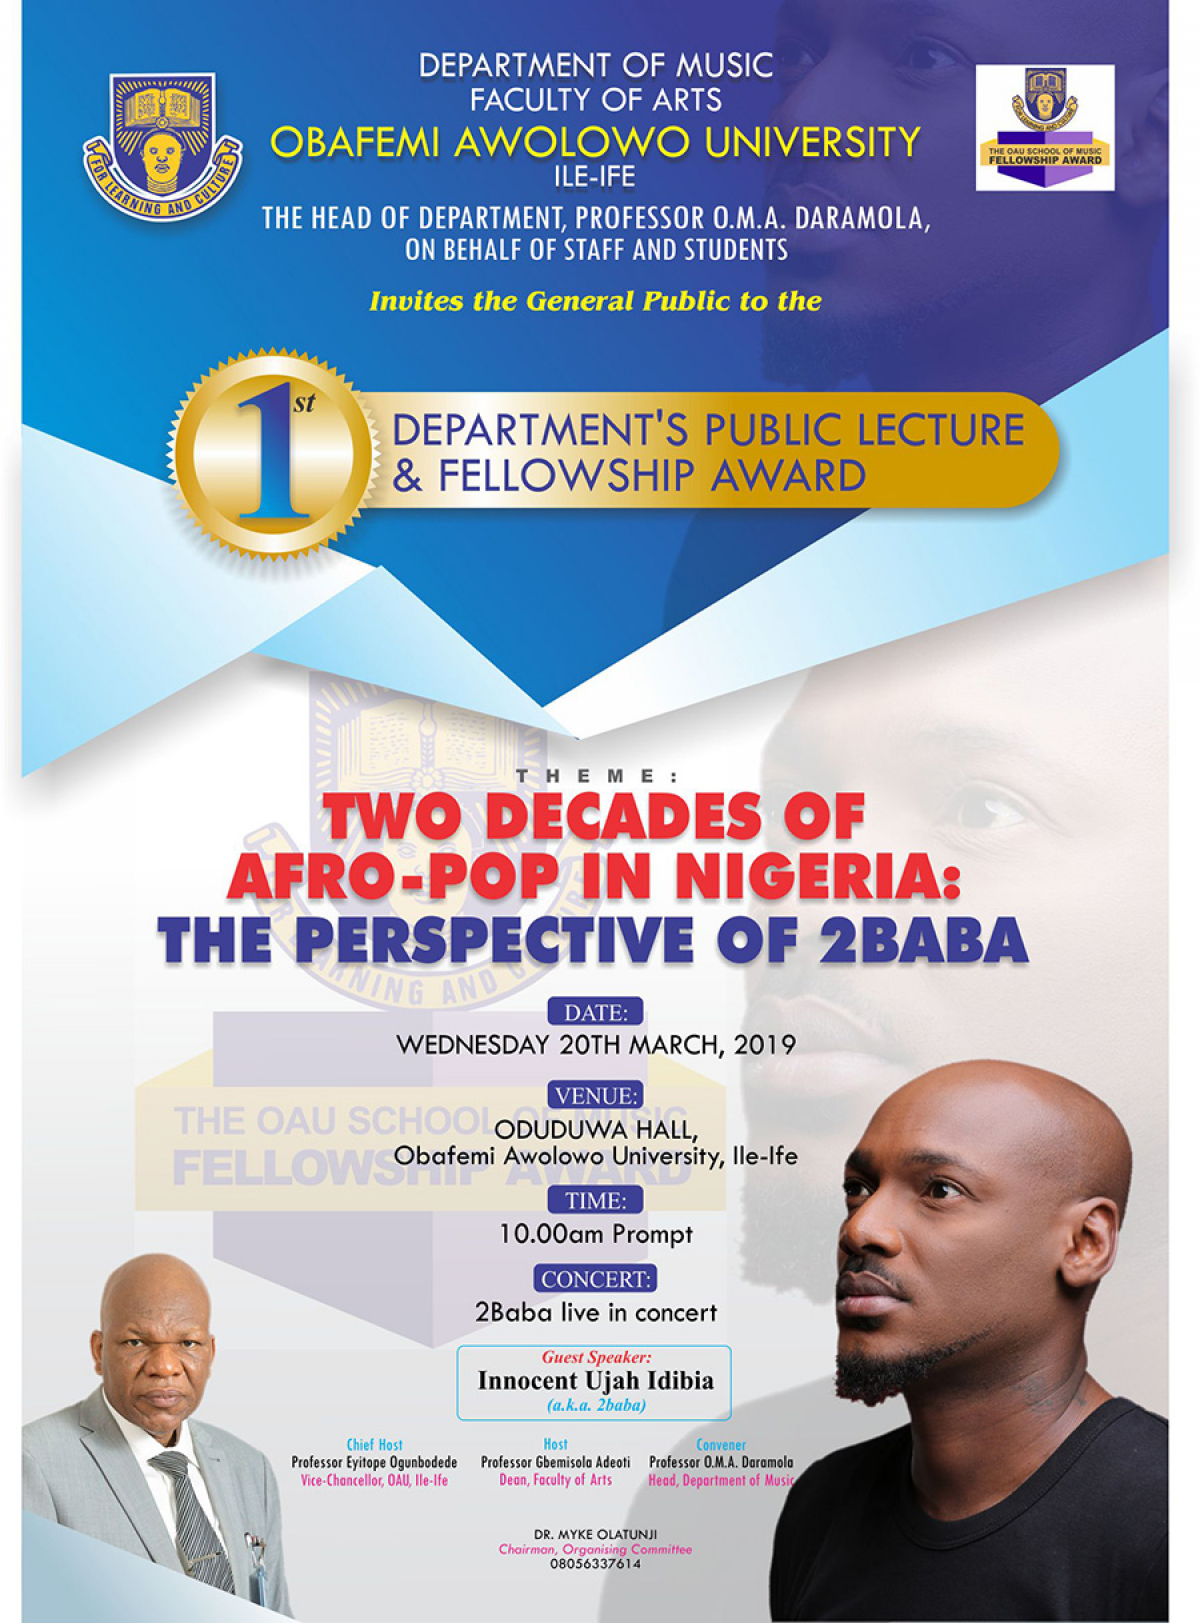 Two Decades of Afro-Pop in Nigeria: The Perspective of 2Baba